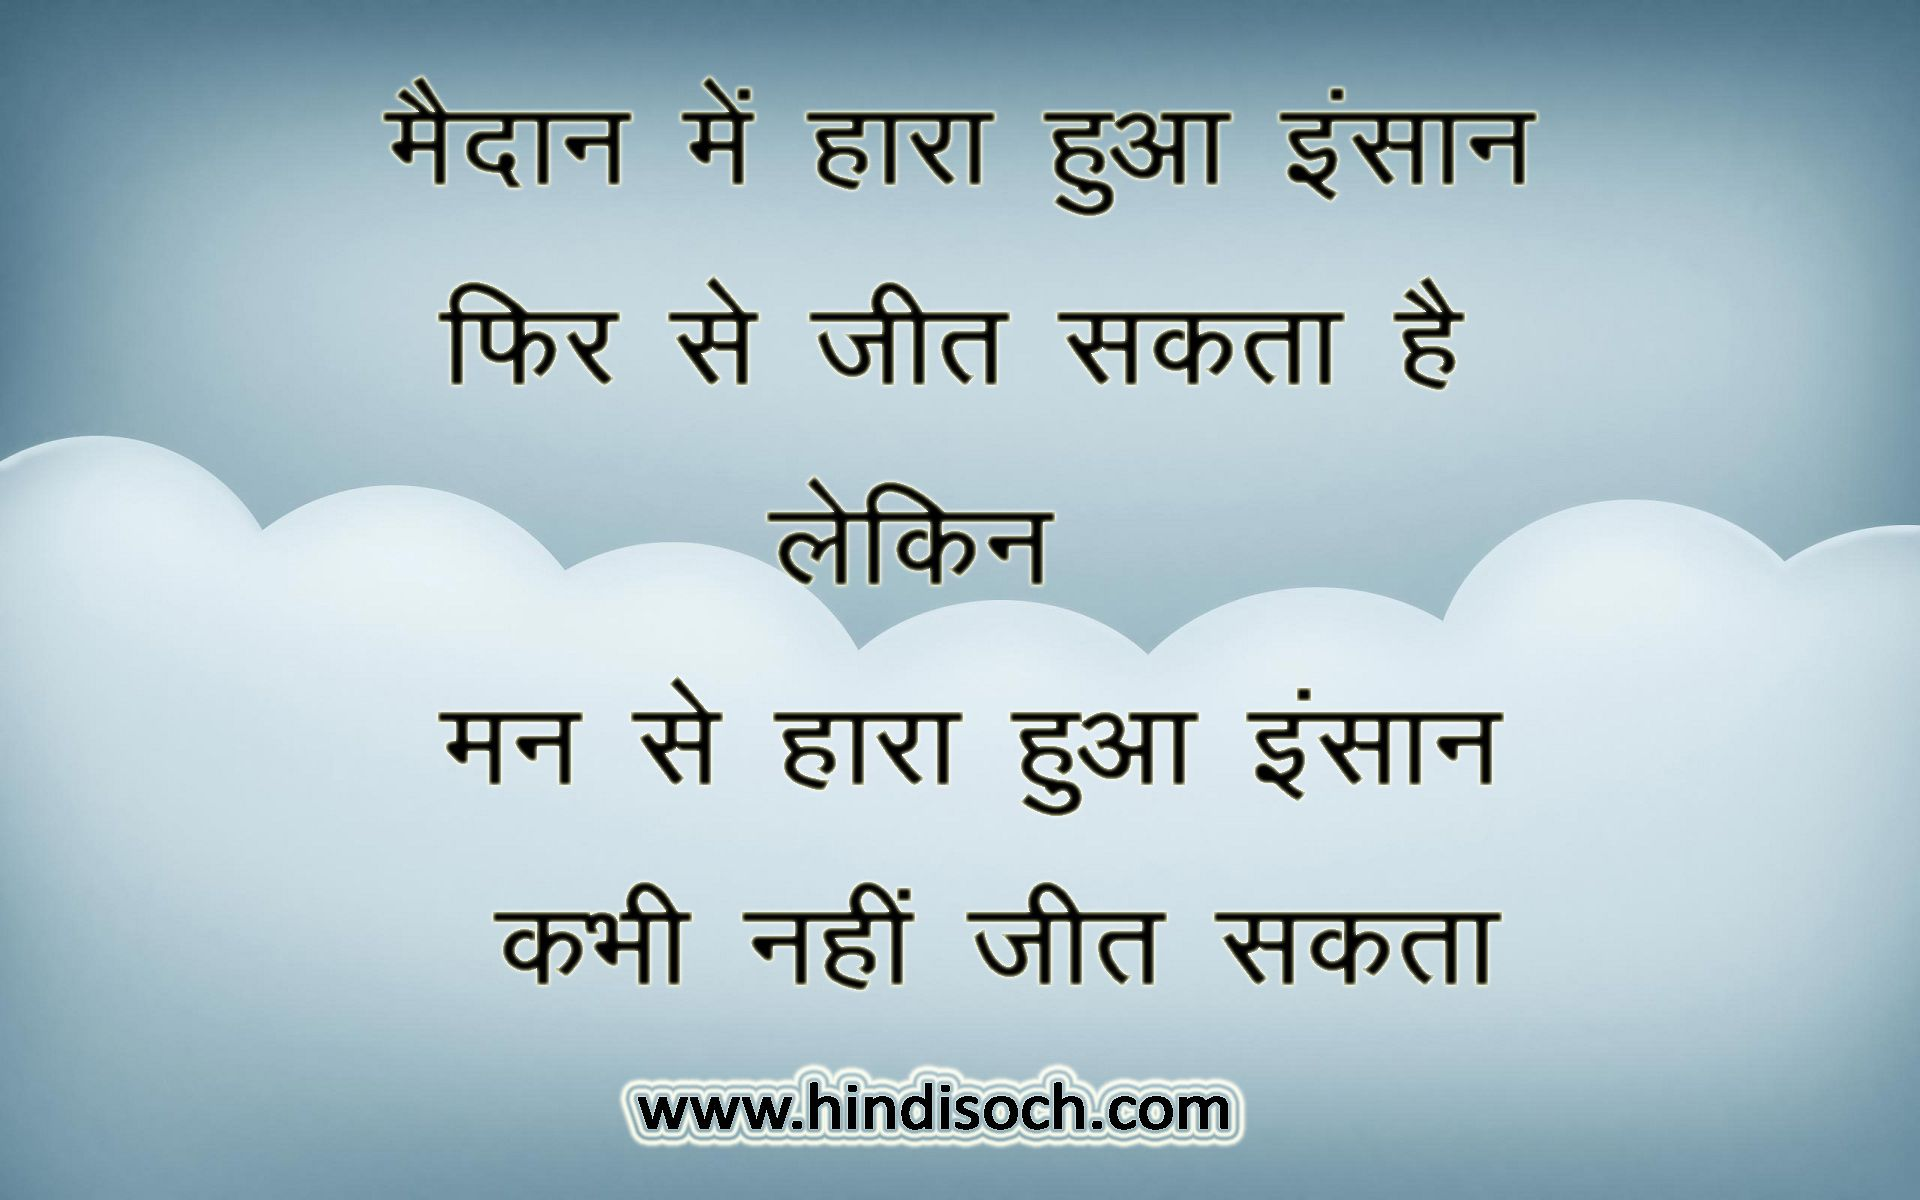 Inspirational Quotations About Life Best Motivational Quotes In Hindi  Quotes  Pinterest